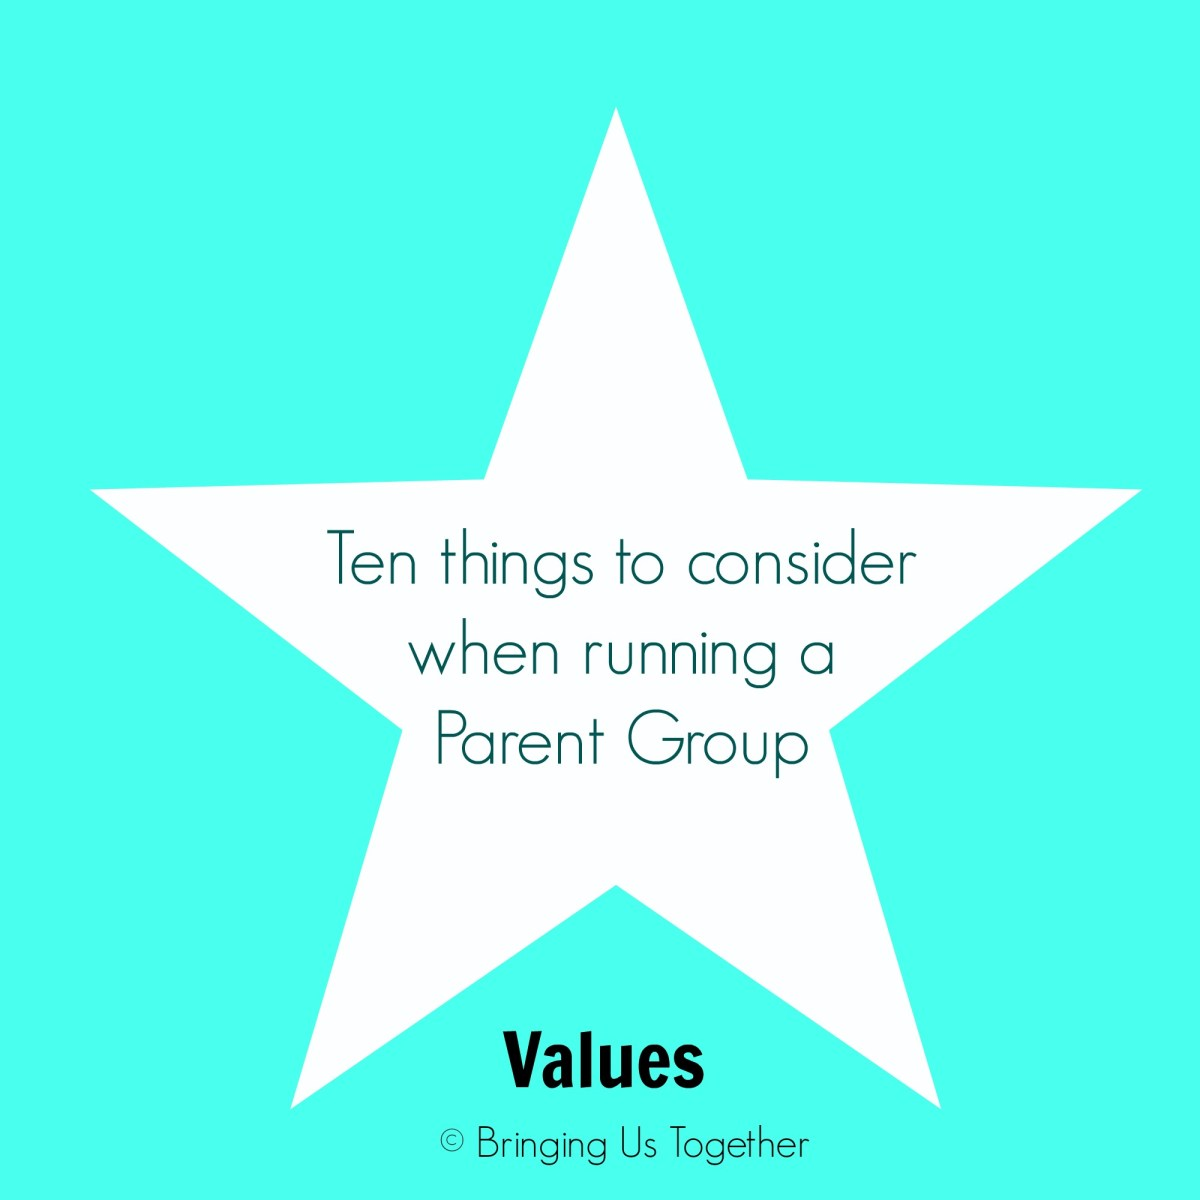 Parent Groups - Values